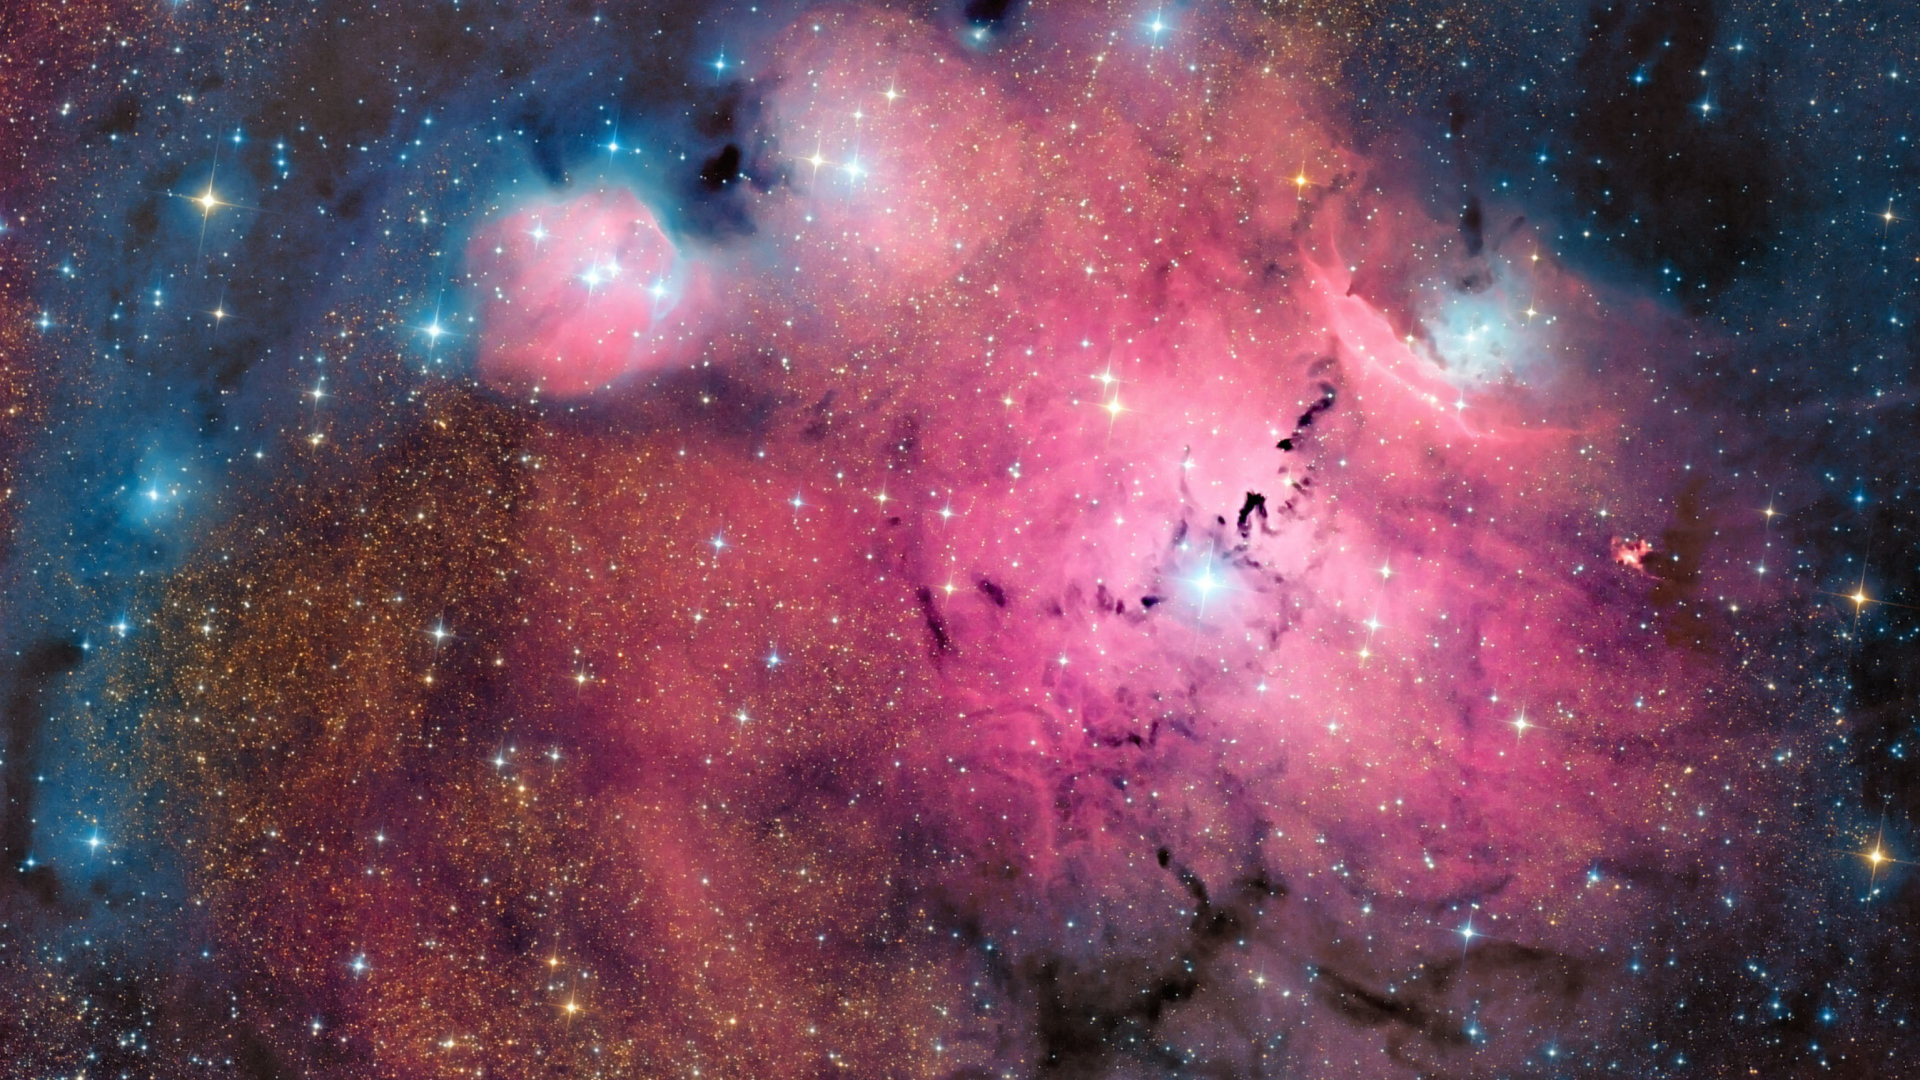 Pink space dust wallpaper for desktop 1920x1080 full hd - Pink space wallpaper ...